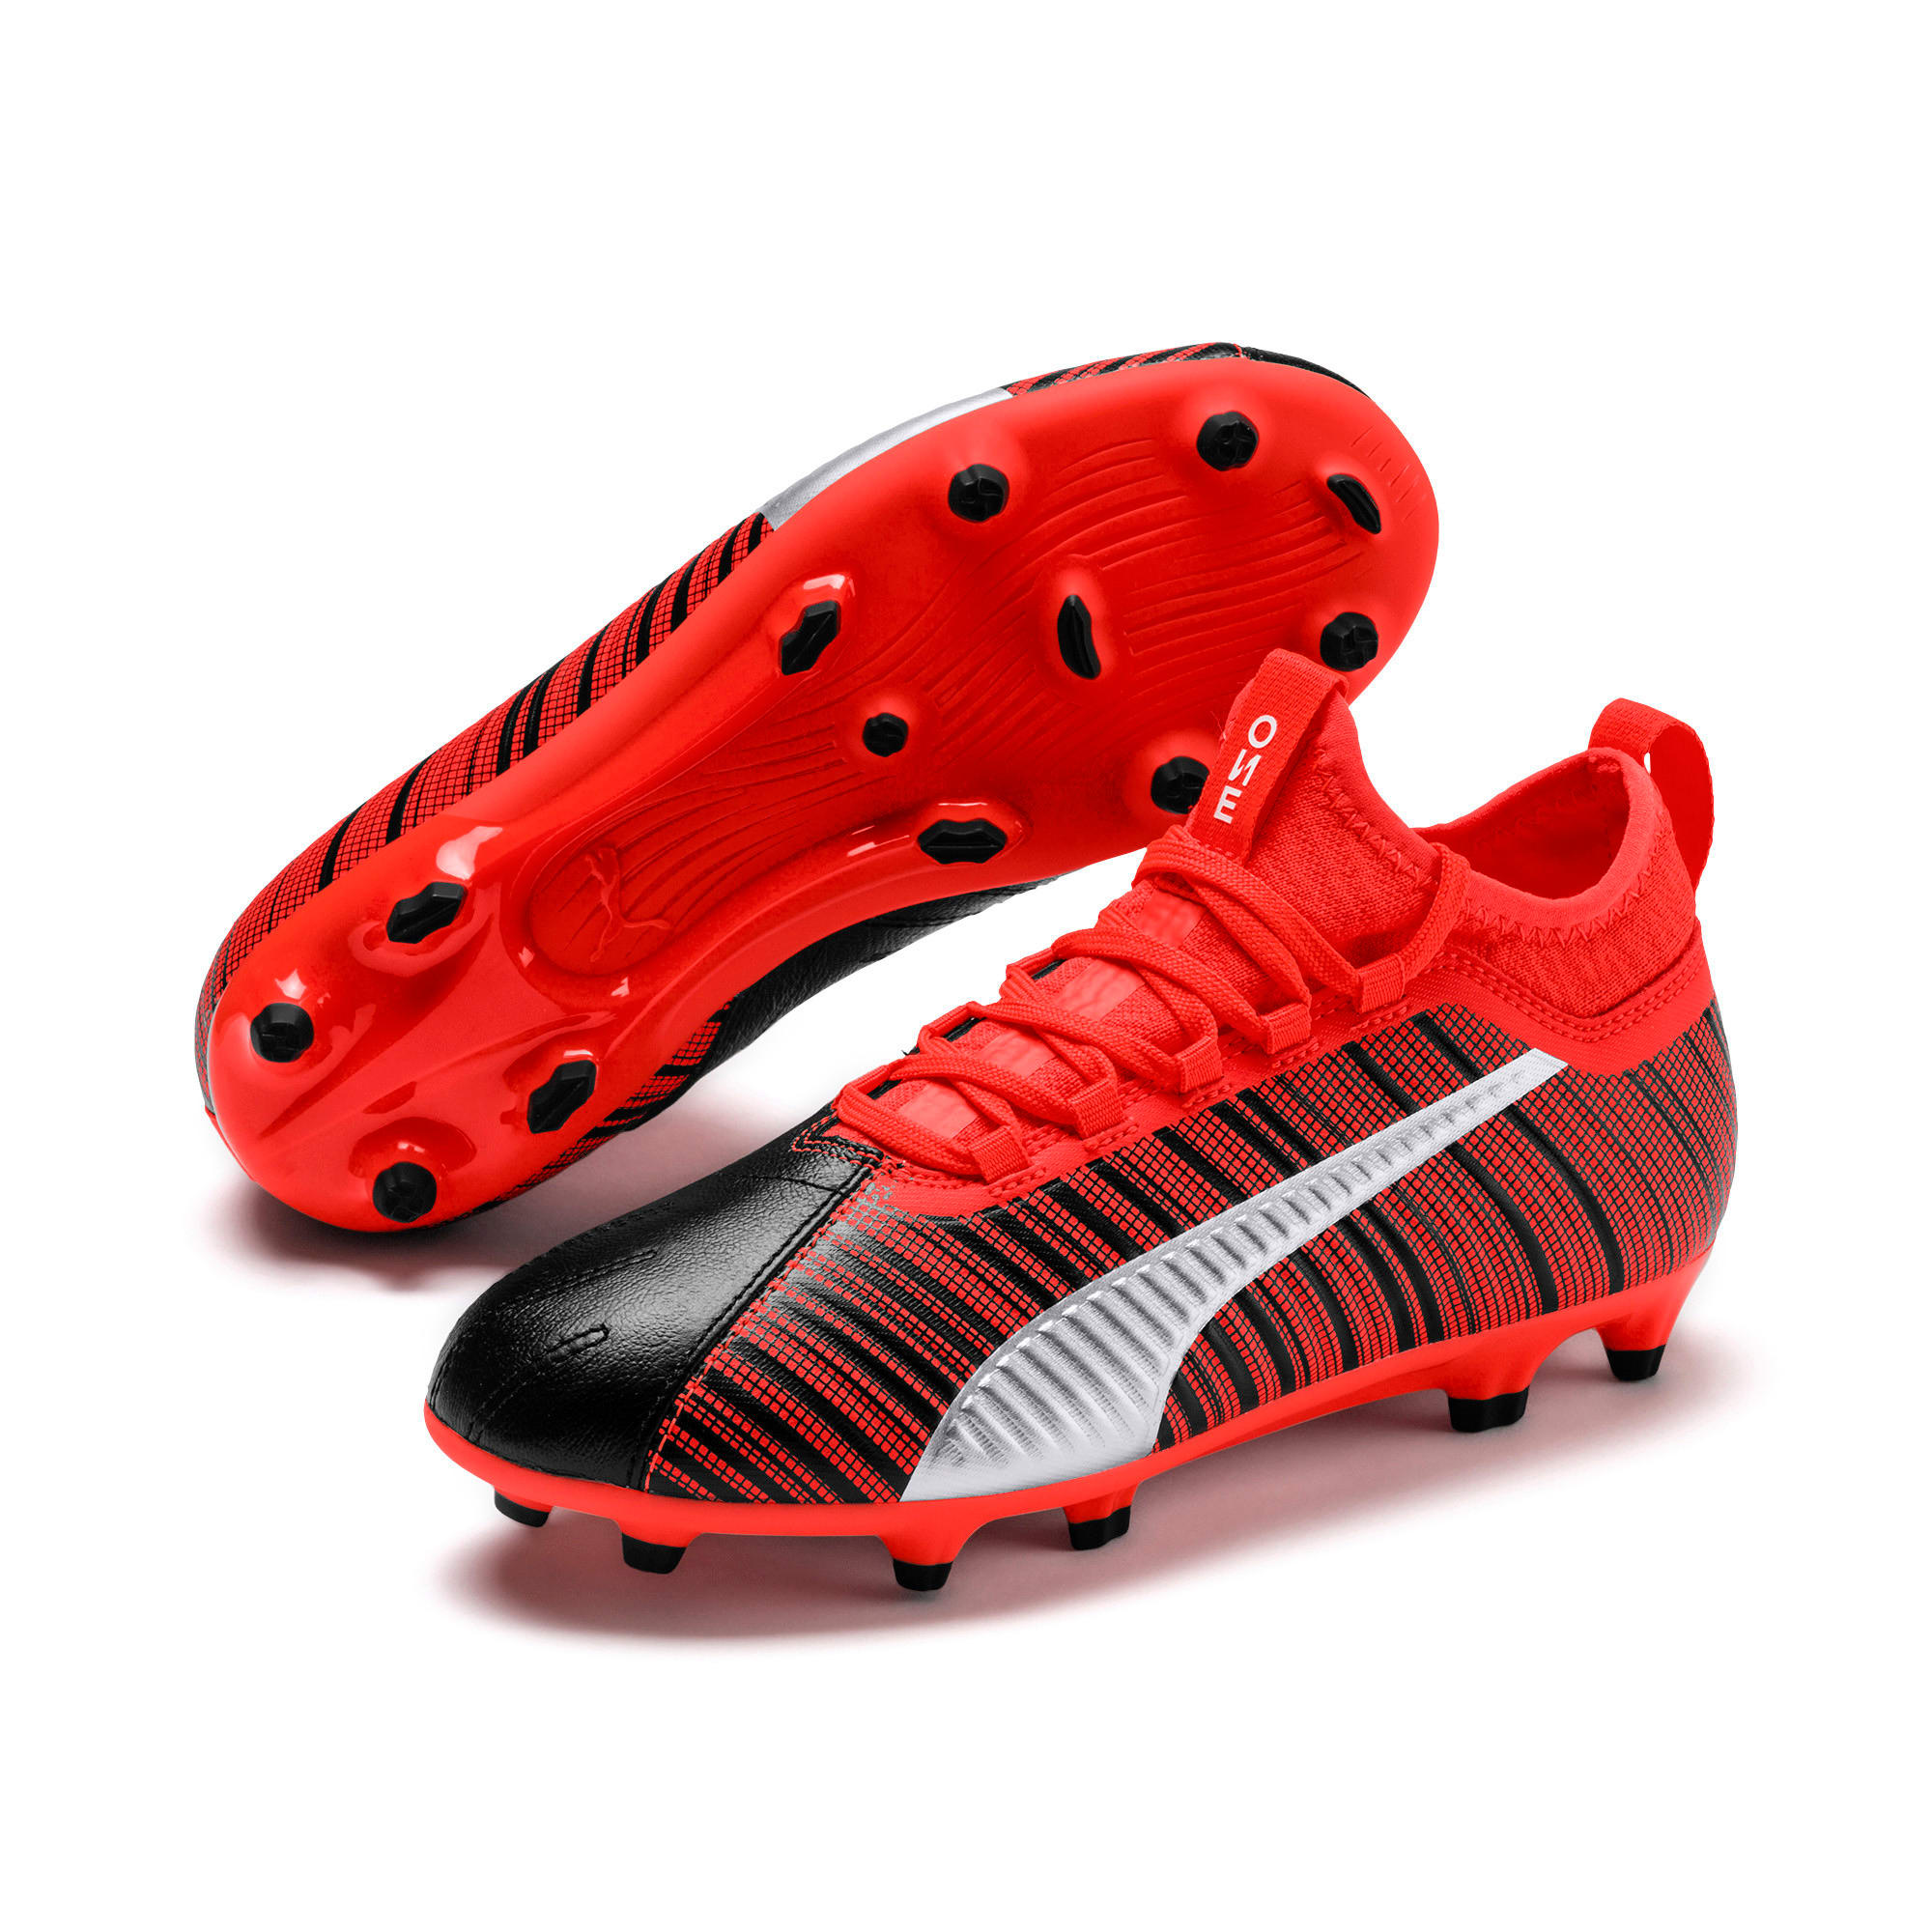 Thumbnail 2 of PUMA ONE 5.3 FG/AG Youth Fußballschuhe, Black-Nrgy Red-Aged Silver, medium